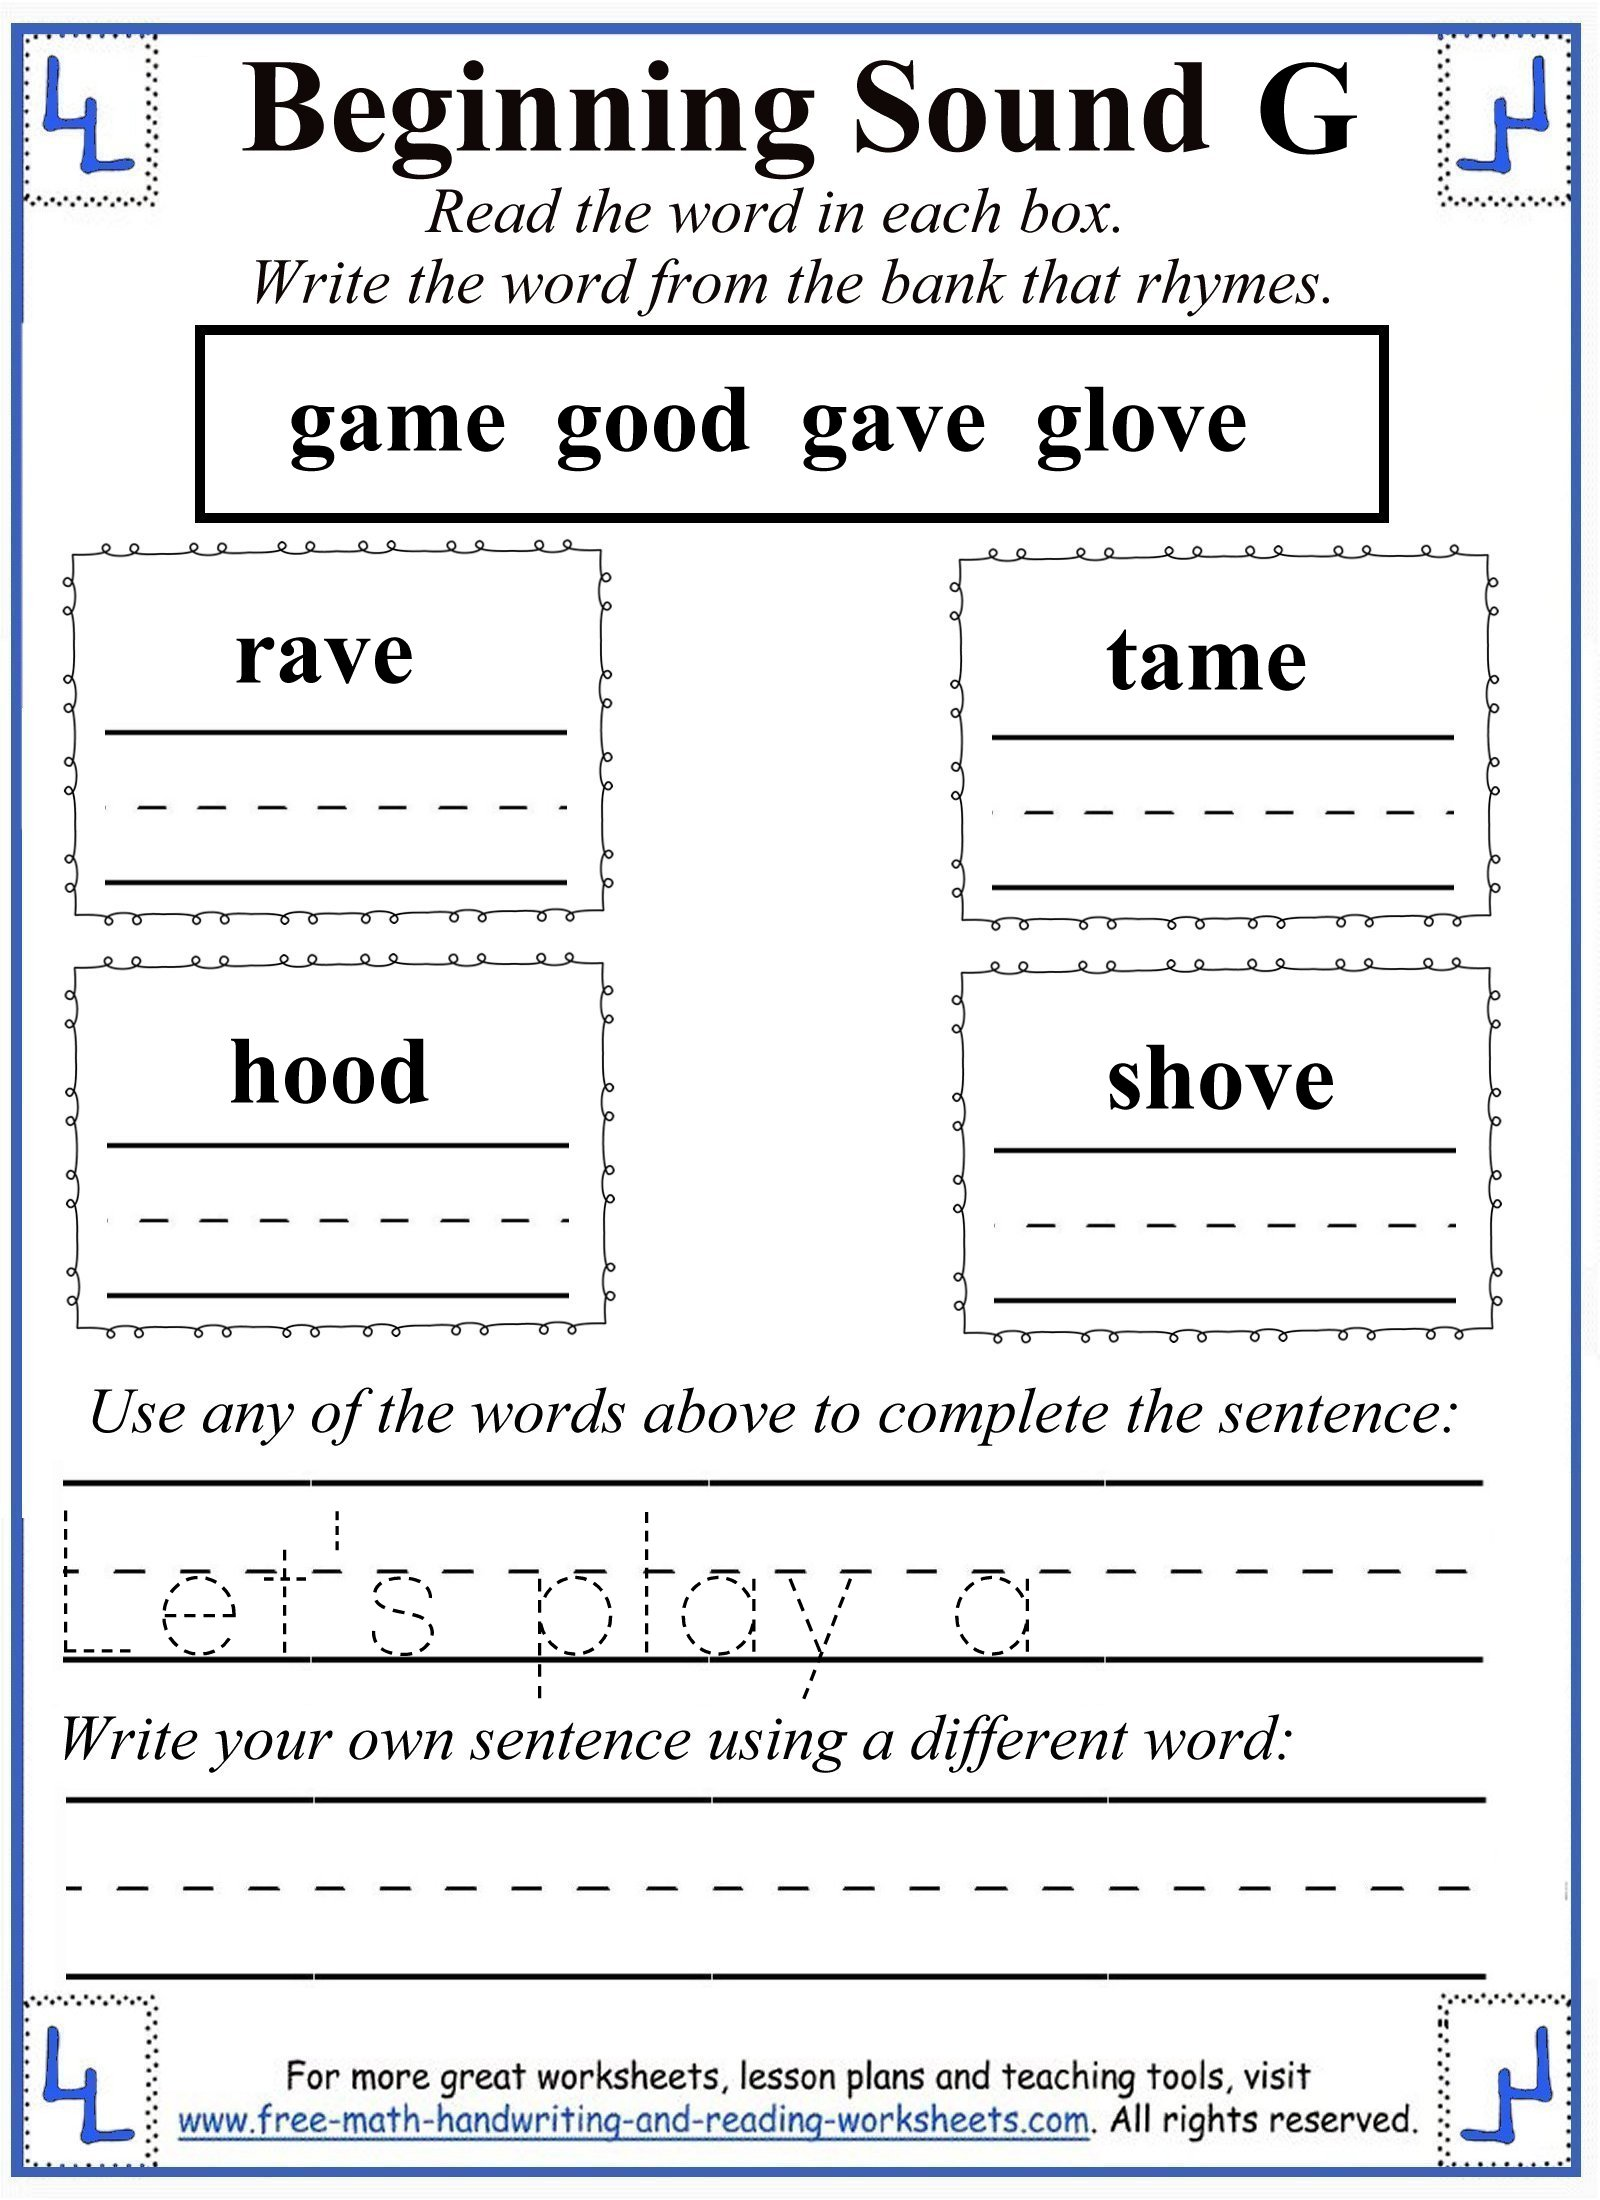 Worksheets Letter G Worksheets letter g worksheet activities worksheets